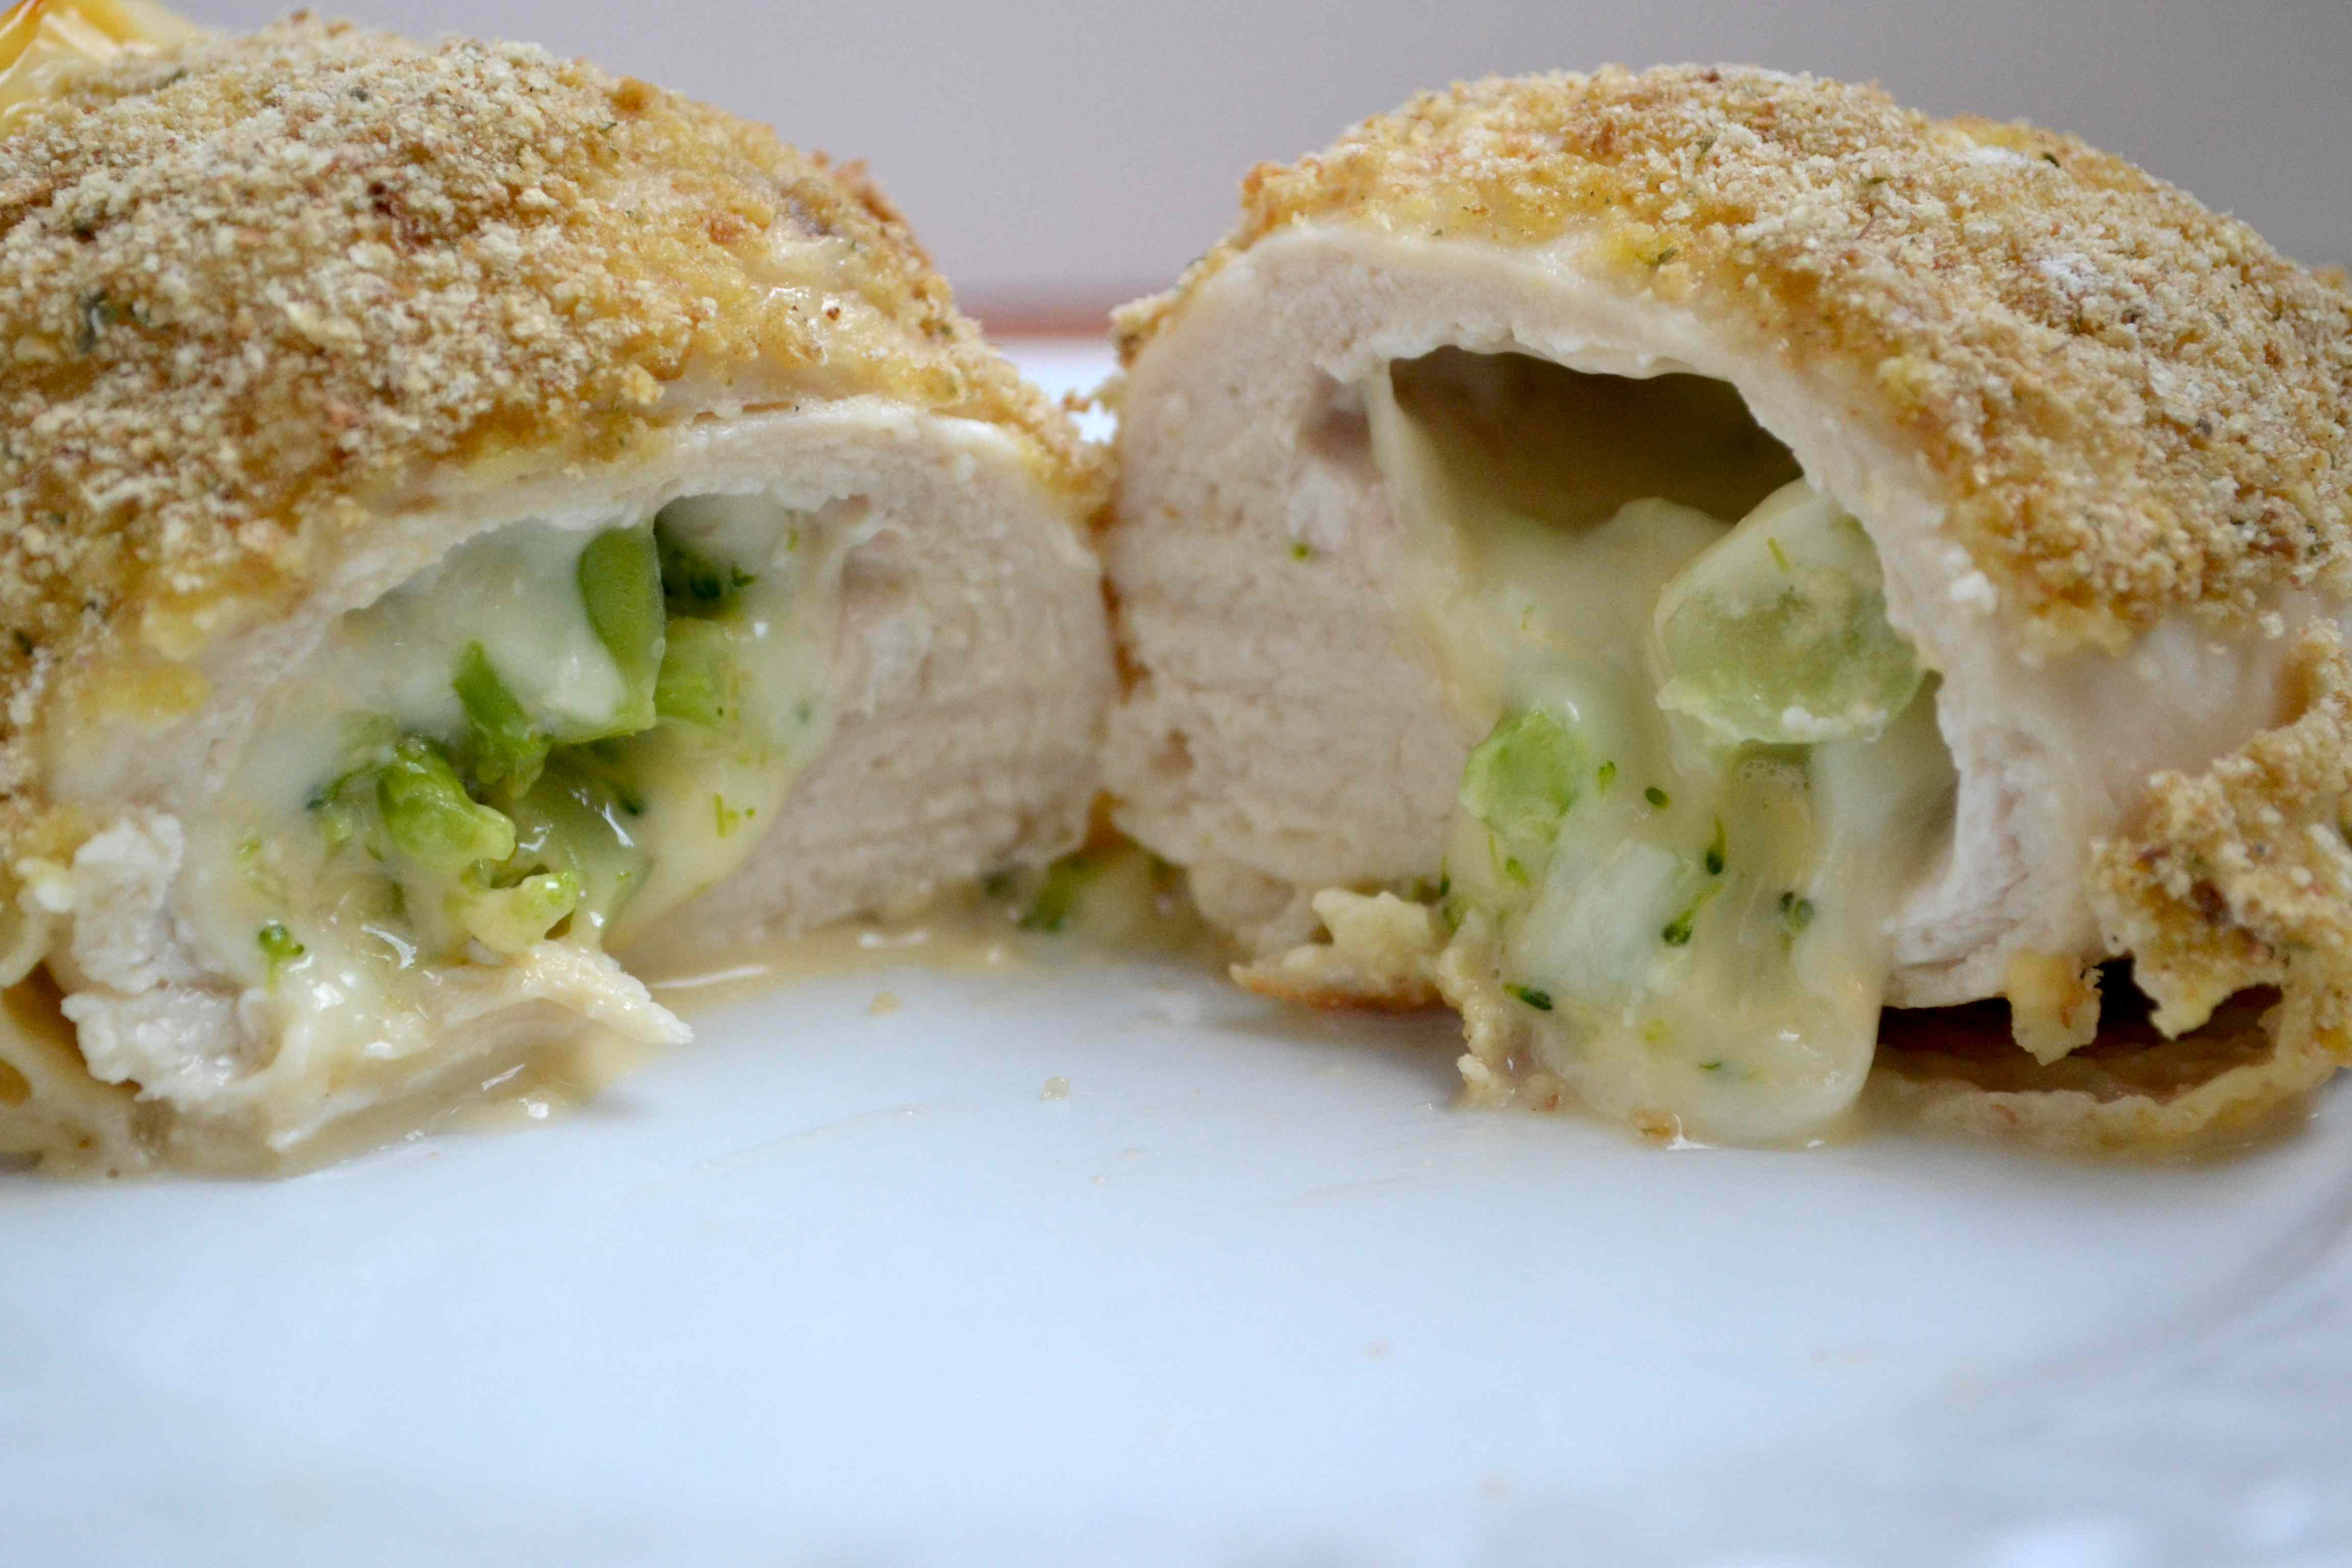 Broccoli and Cheese Stuffed Chicken – Measuring Cups, Optional